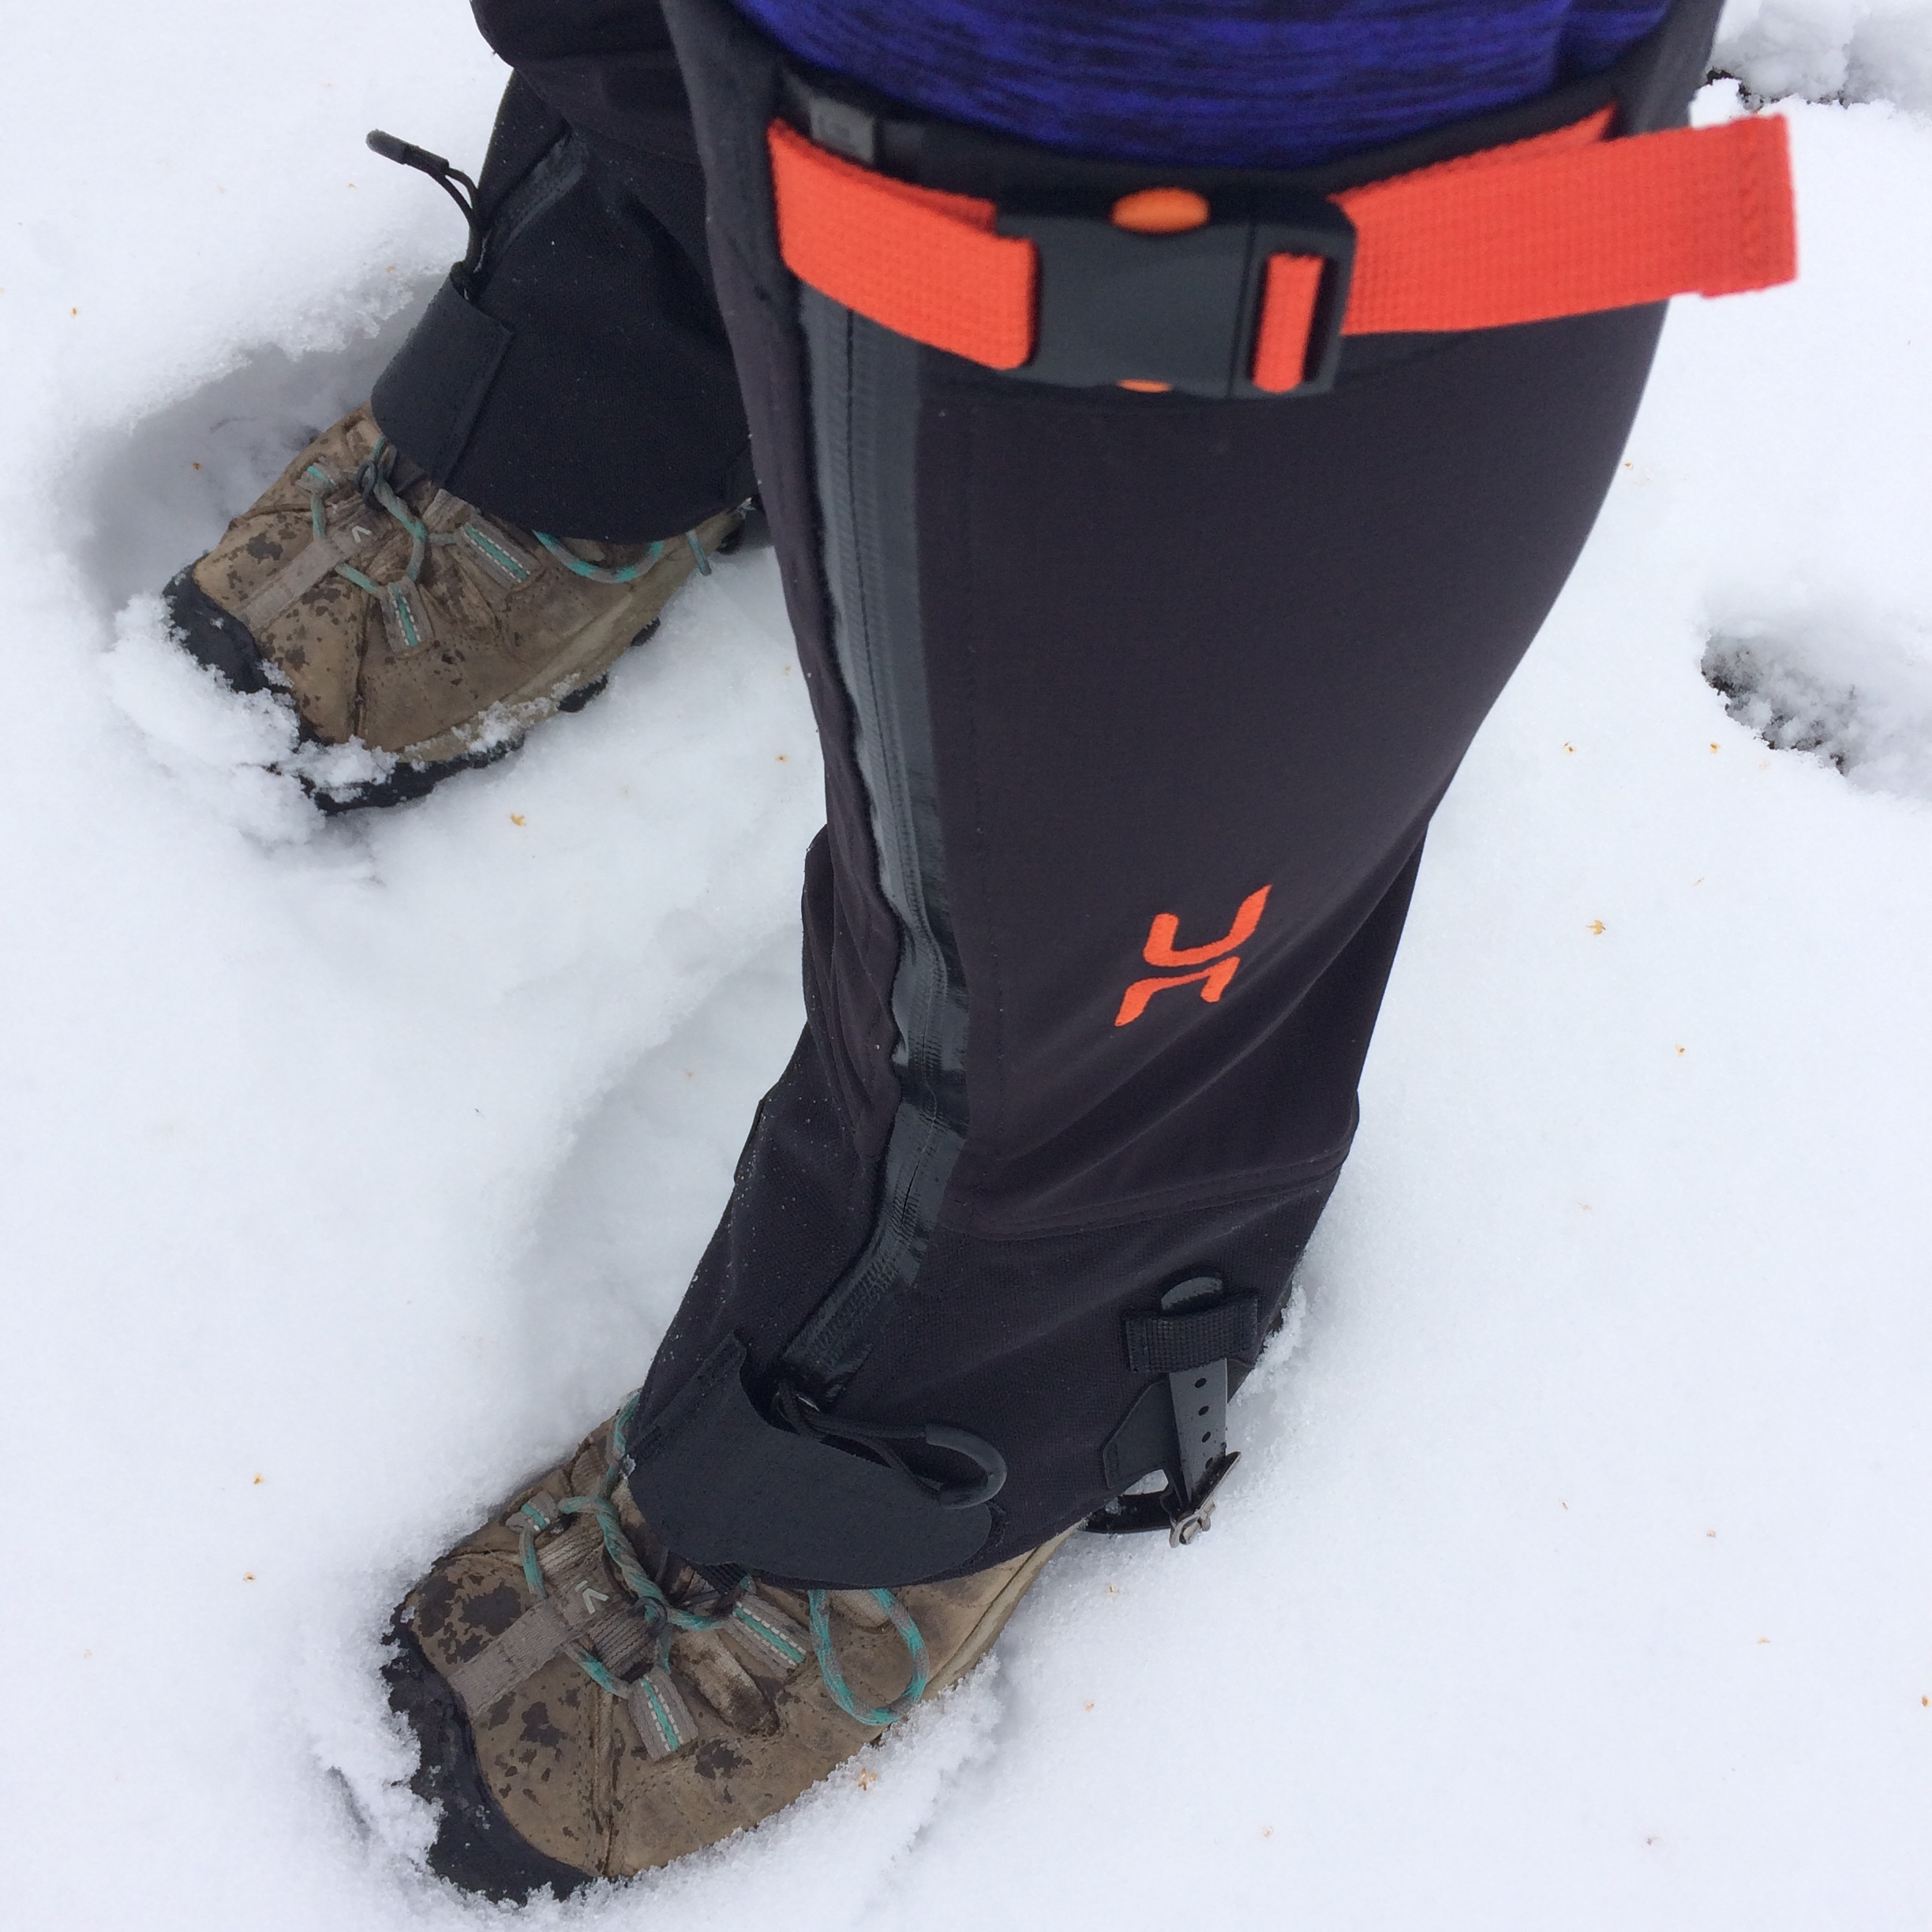 Gear Review – Armadillo LT Gaiters from Hillsound